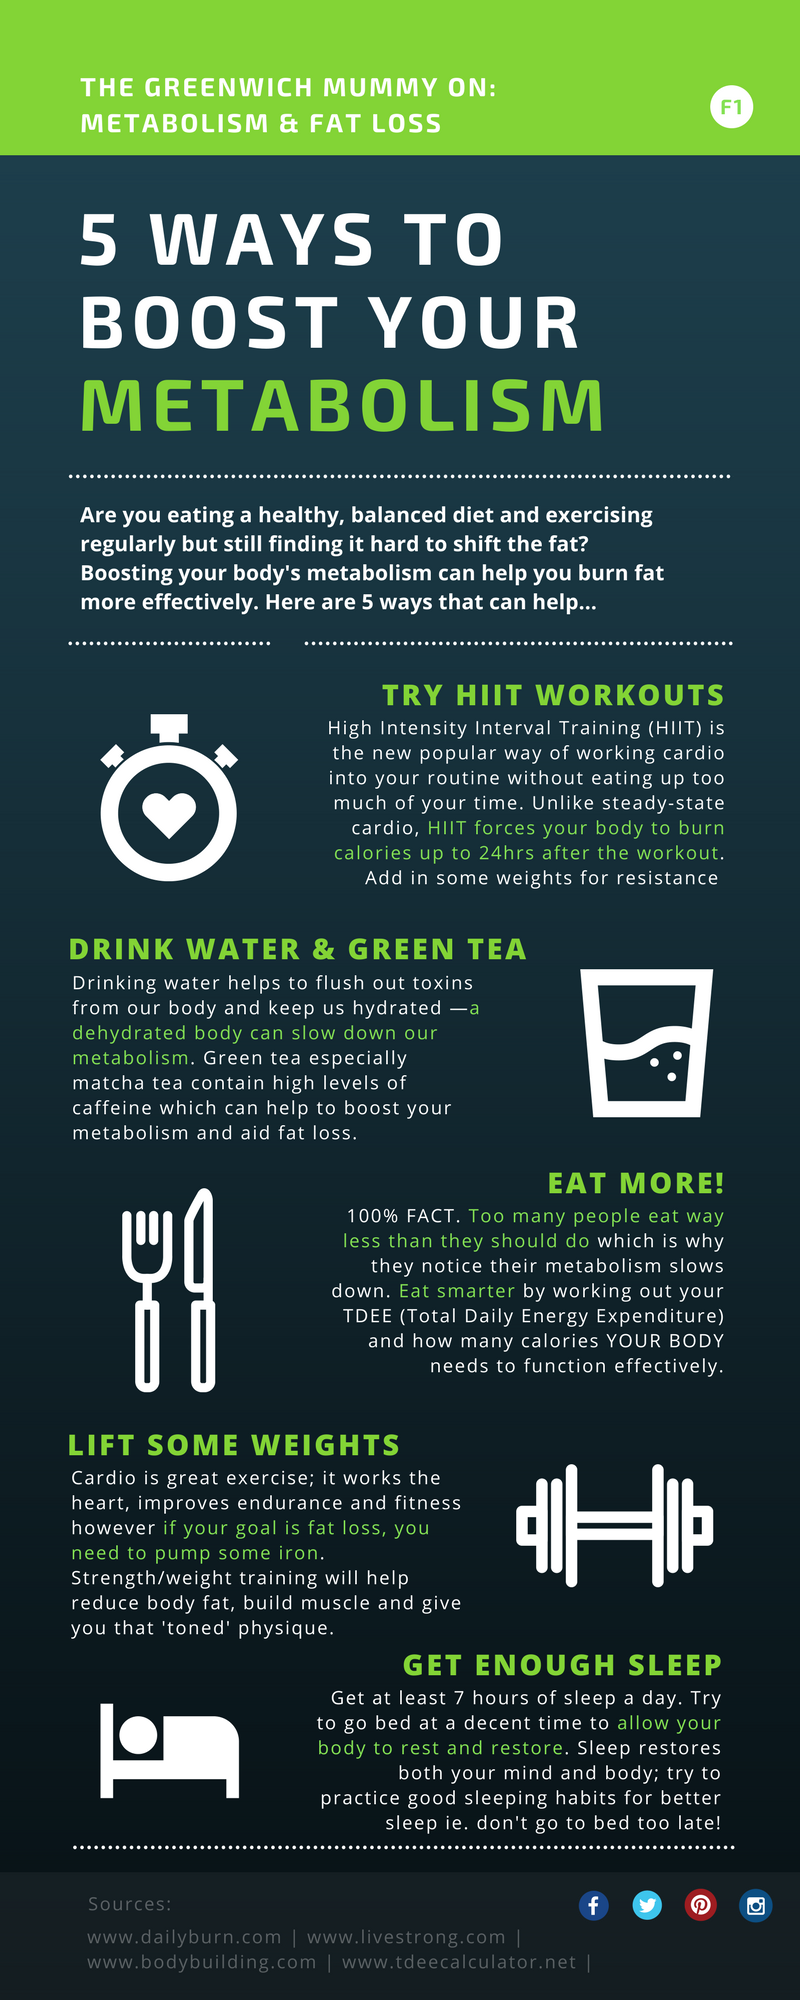 The Greenwich Mummy Blog | 5 ways to boost metabolism for fat loss